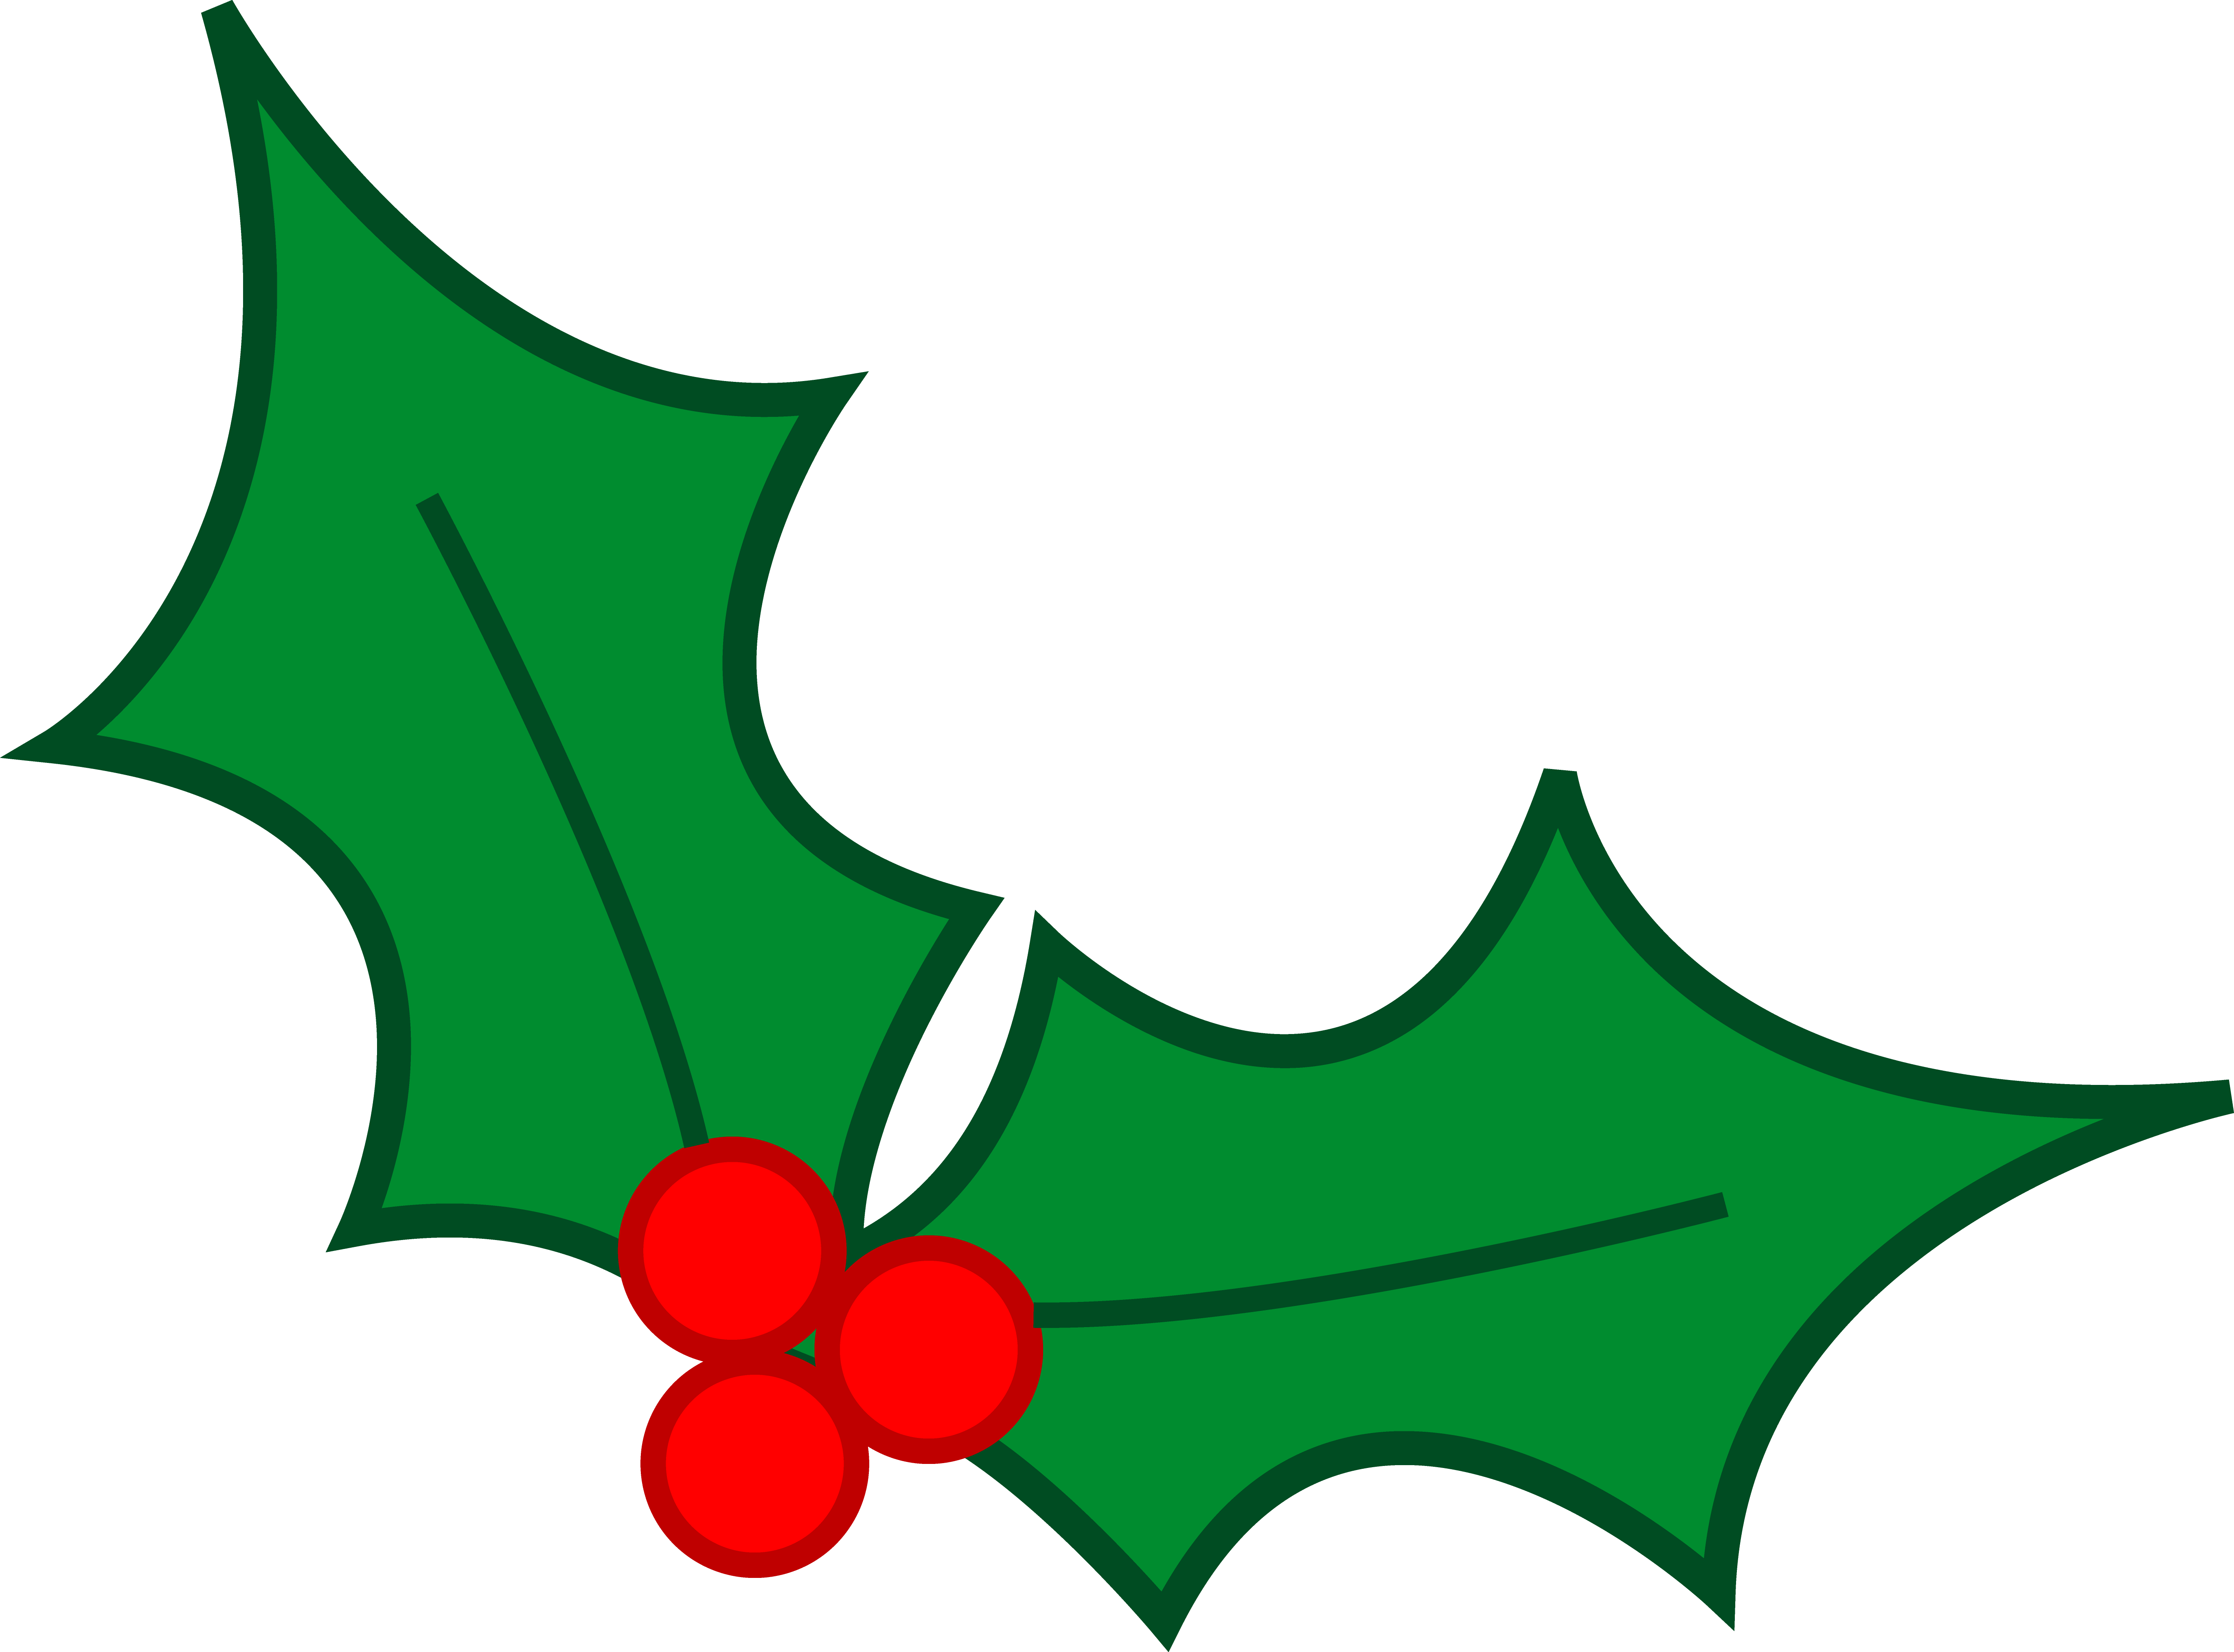 Christmas at clipart svg freeuse download Free Christmas Clip Art Holly   Clipart Panda - Free Clipart Images svg freeuse download